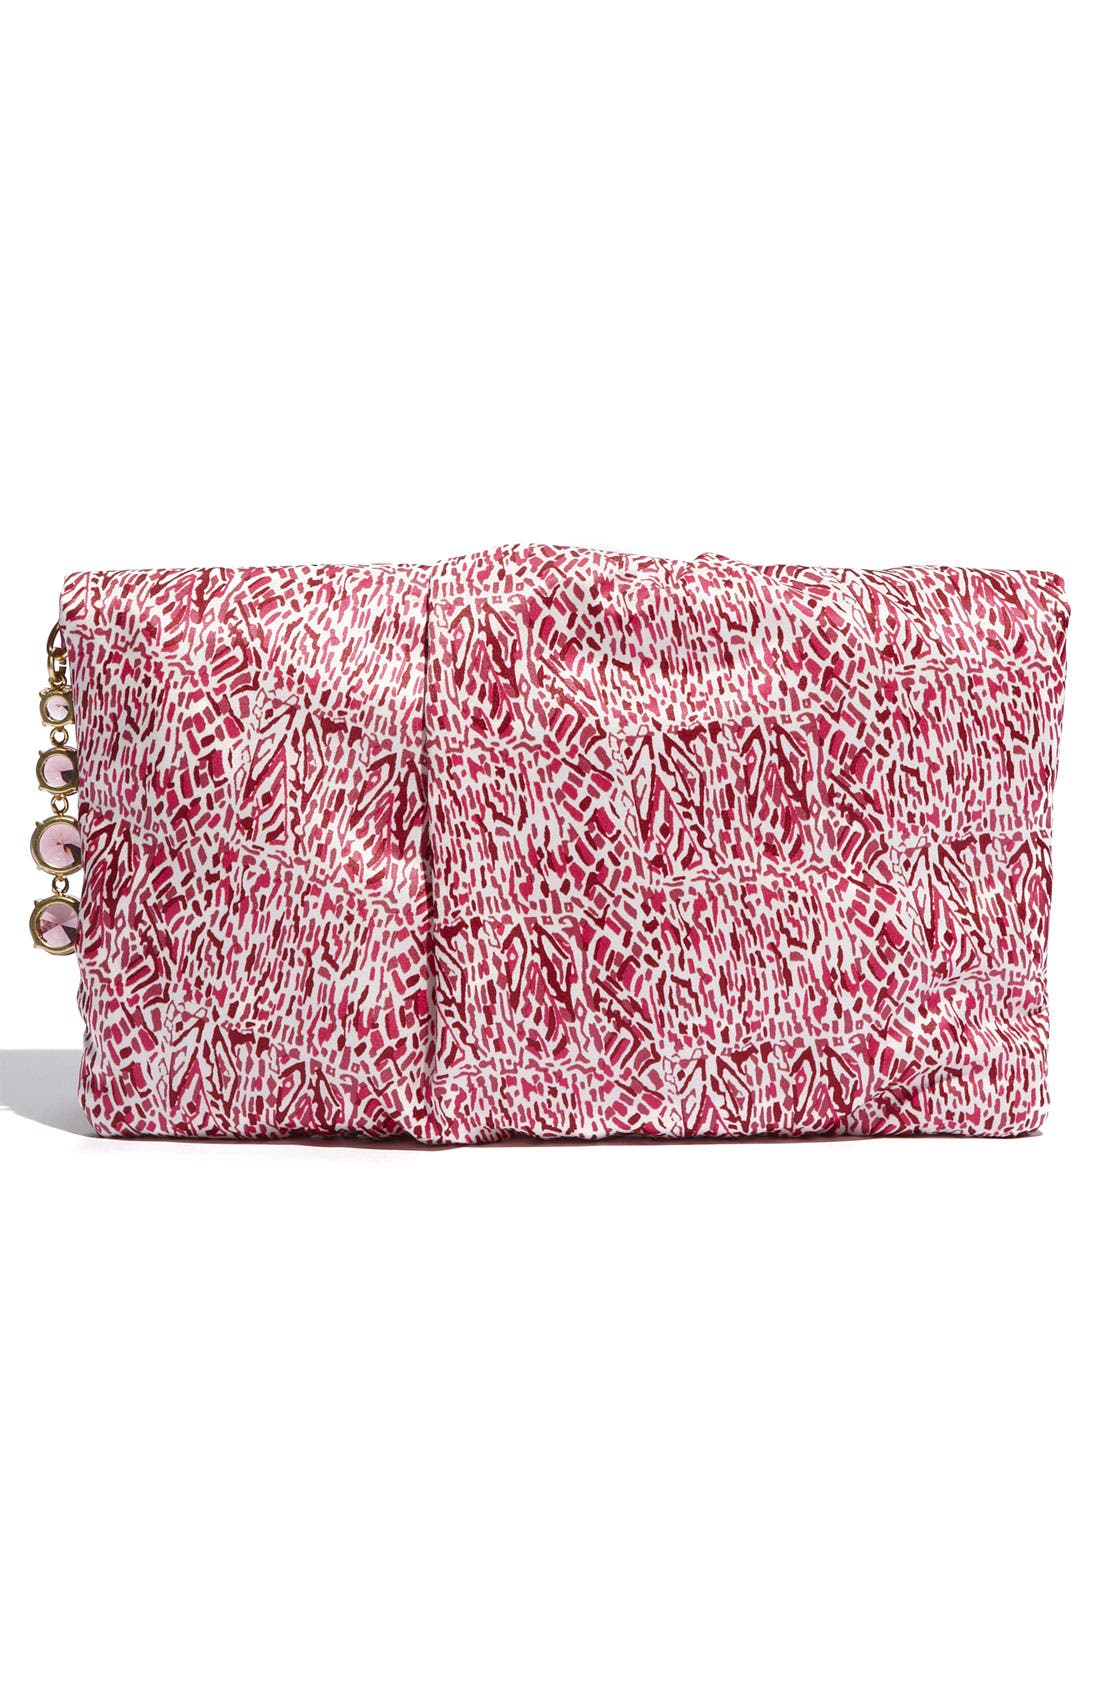 Alternate Image 3  - Juicy Couture 'Madame Daydreamer' Clutch